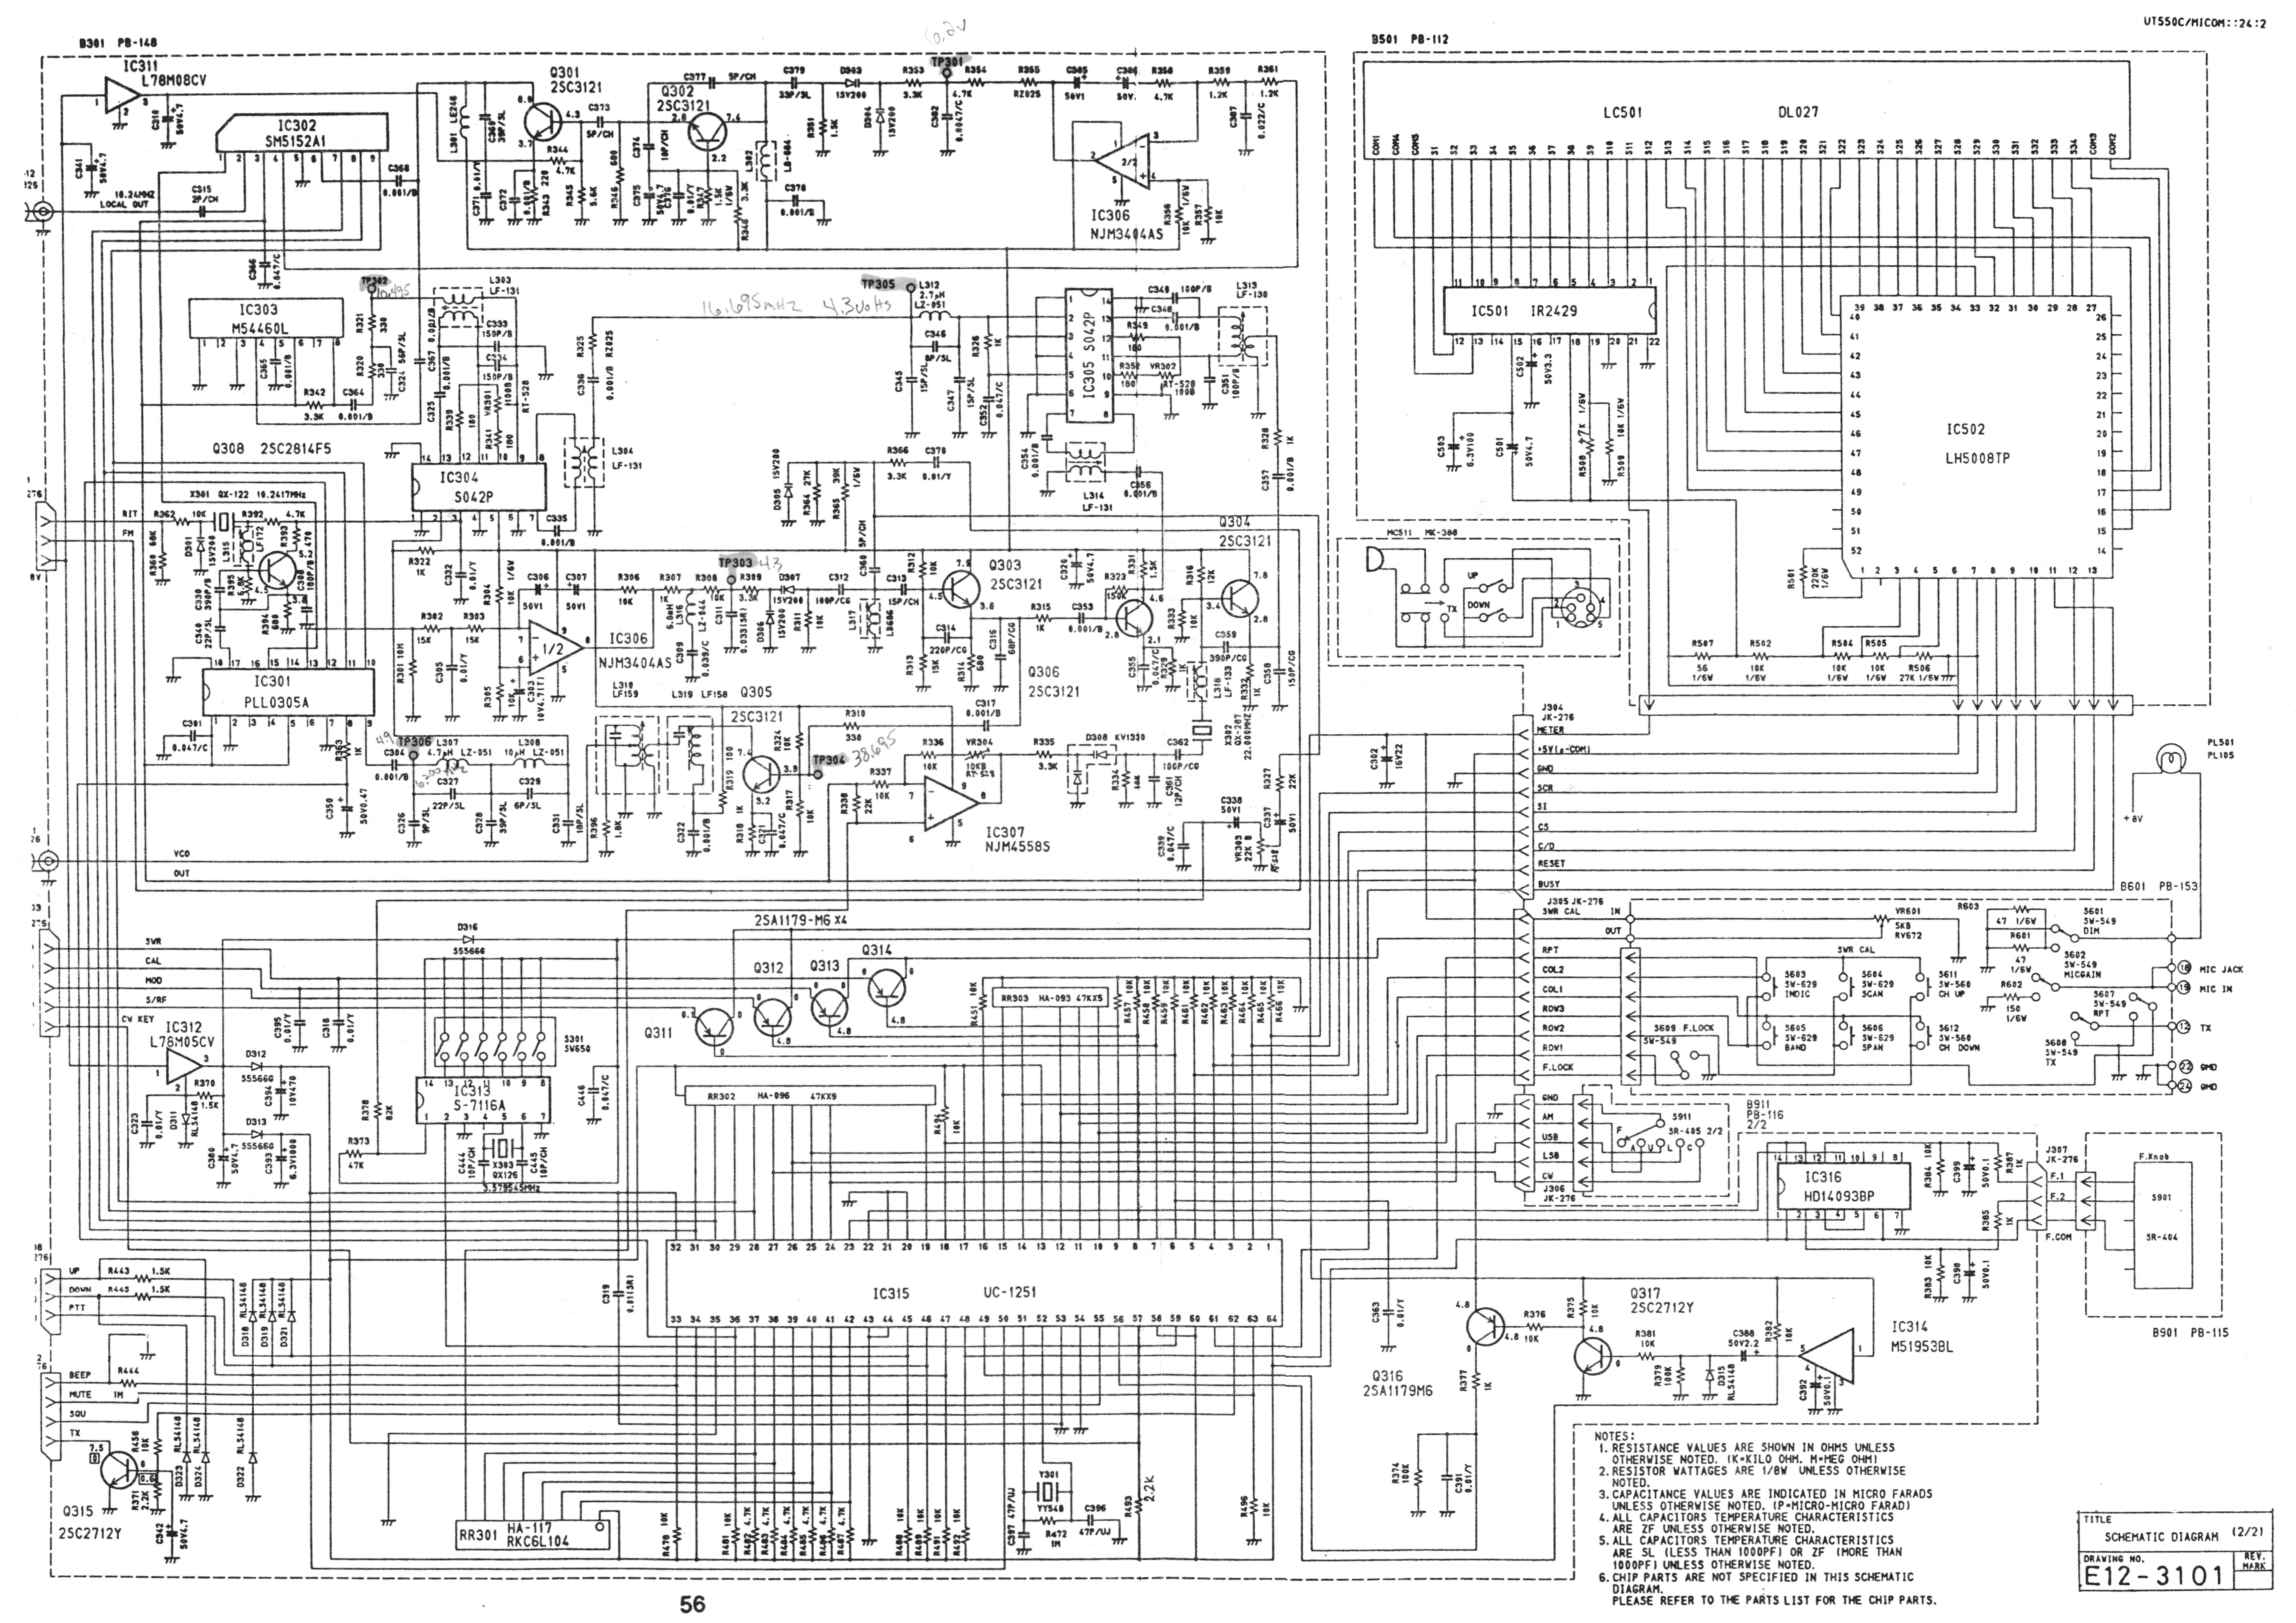 Circuit Diagram Of A Cpu Wiring Schematic 2019 Processor For Get Free Image About